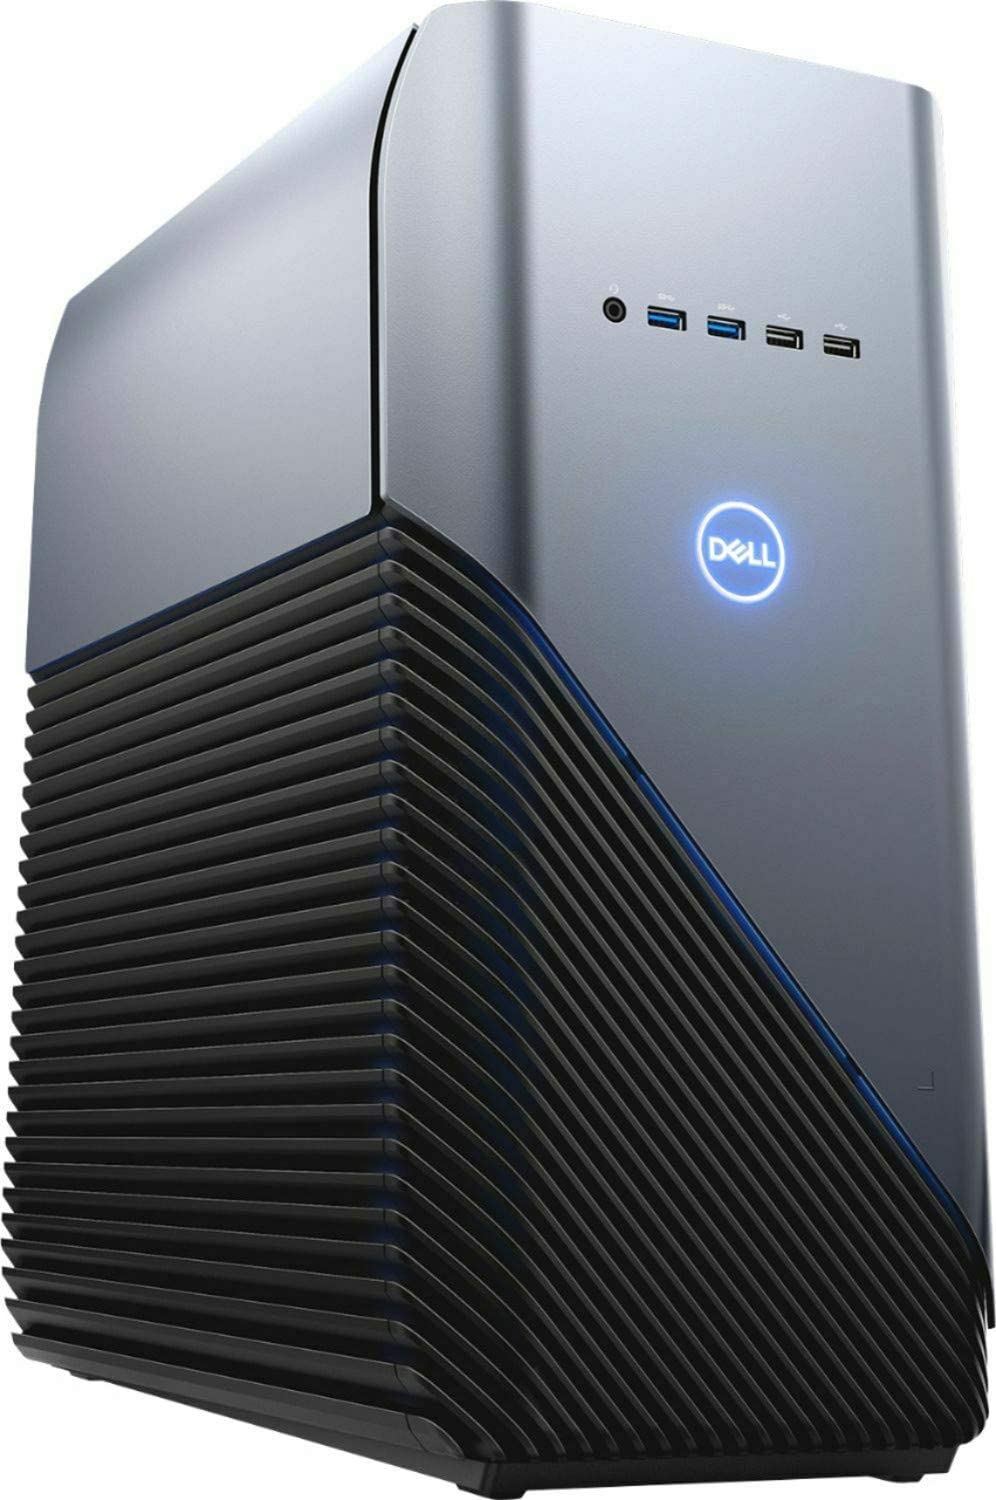 2019 Dell Inspiron Gaming Desktop Computer, AMD Ryzen 7-2700X 8-Core up to 4.3GHz, 32GB DDR4 RAM, 1TB 7200rpm HDD + 256GB SSD, Radeon RX 580, USB 3.1, HDMI, 802.11ac WiFi, Bluetooth 4.1, Windows 10